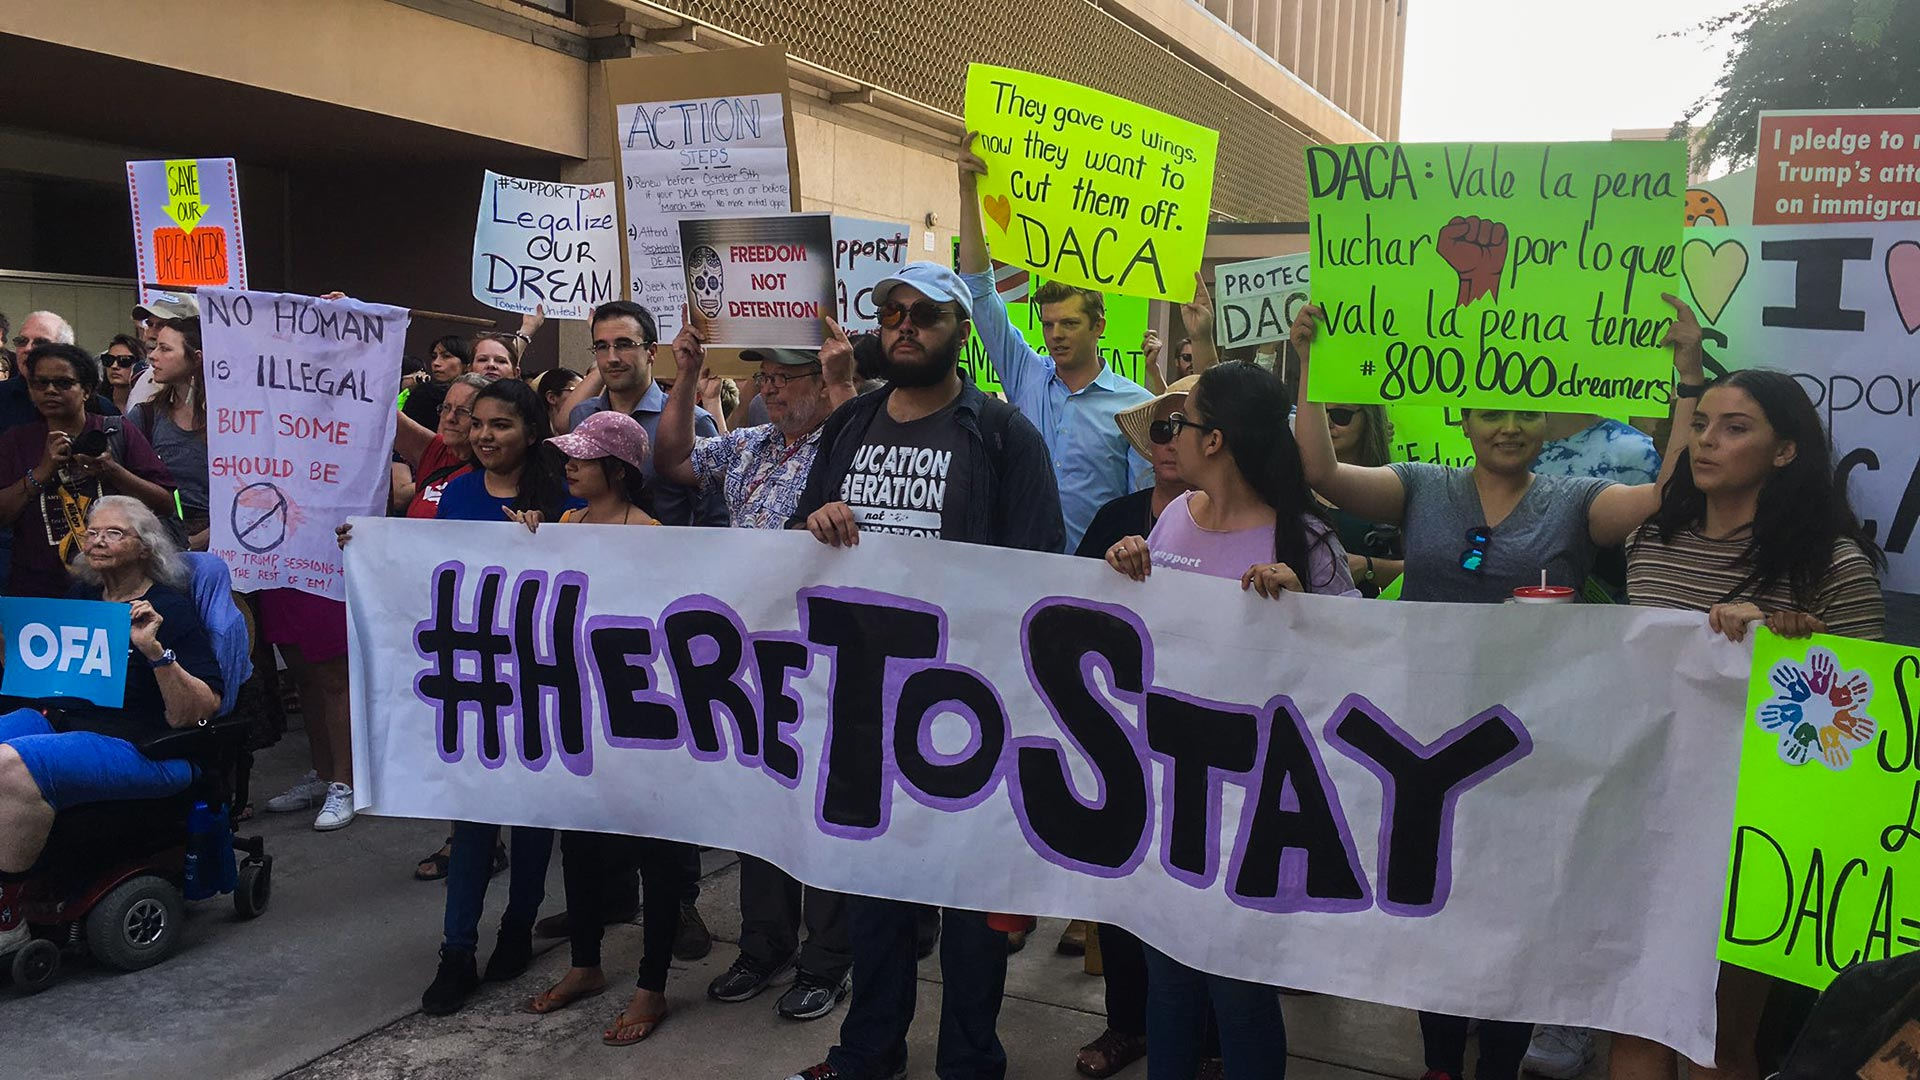 A rally at Tucson City Hall in support of the Deferred Action for Childhood Arrivals program, Sept. 5, 2017.